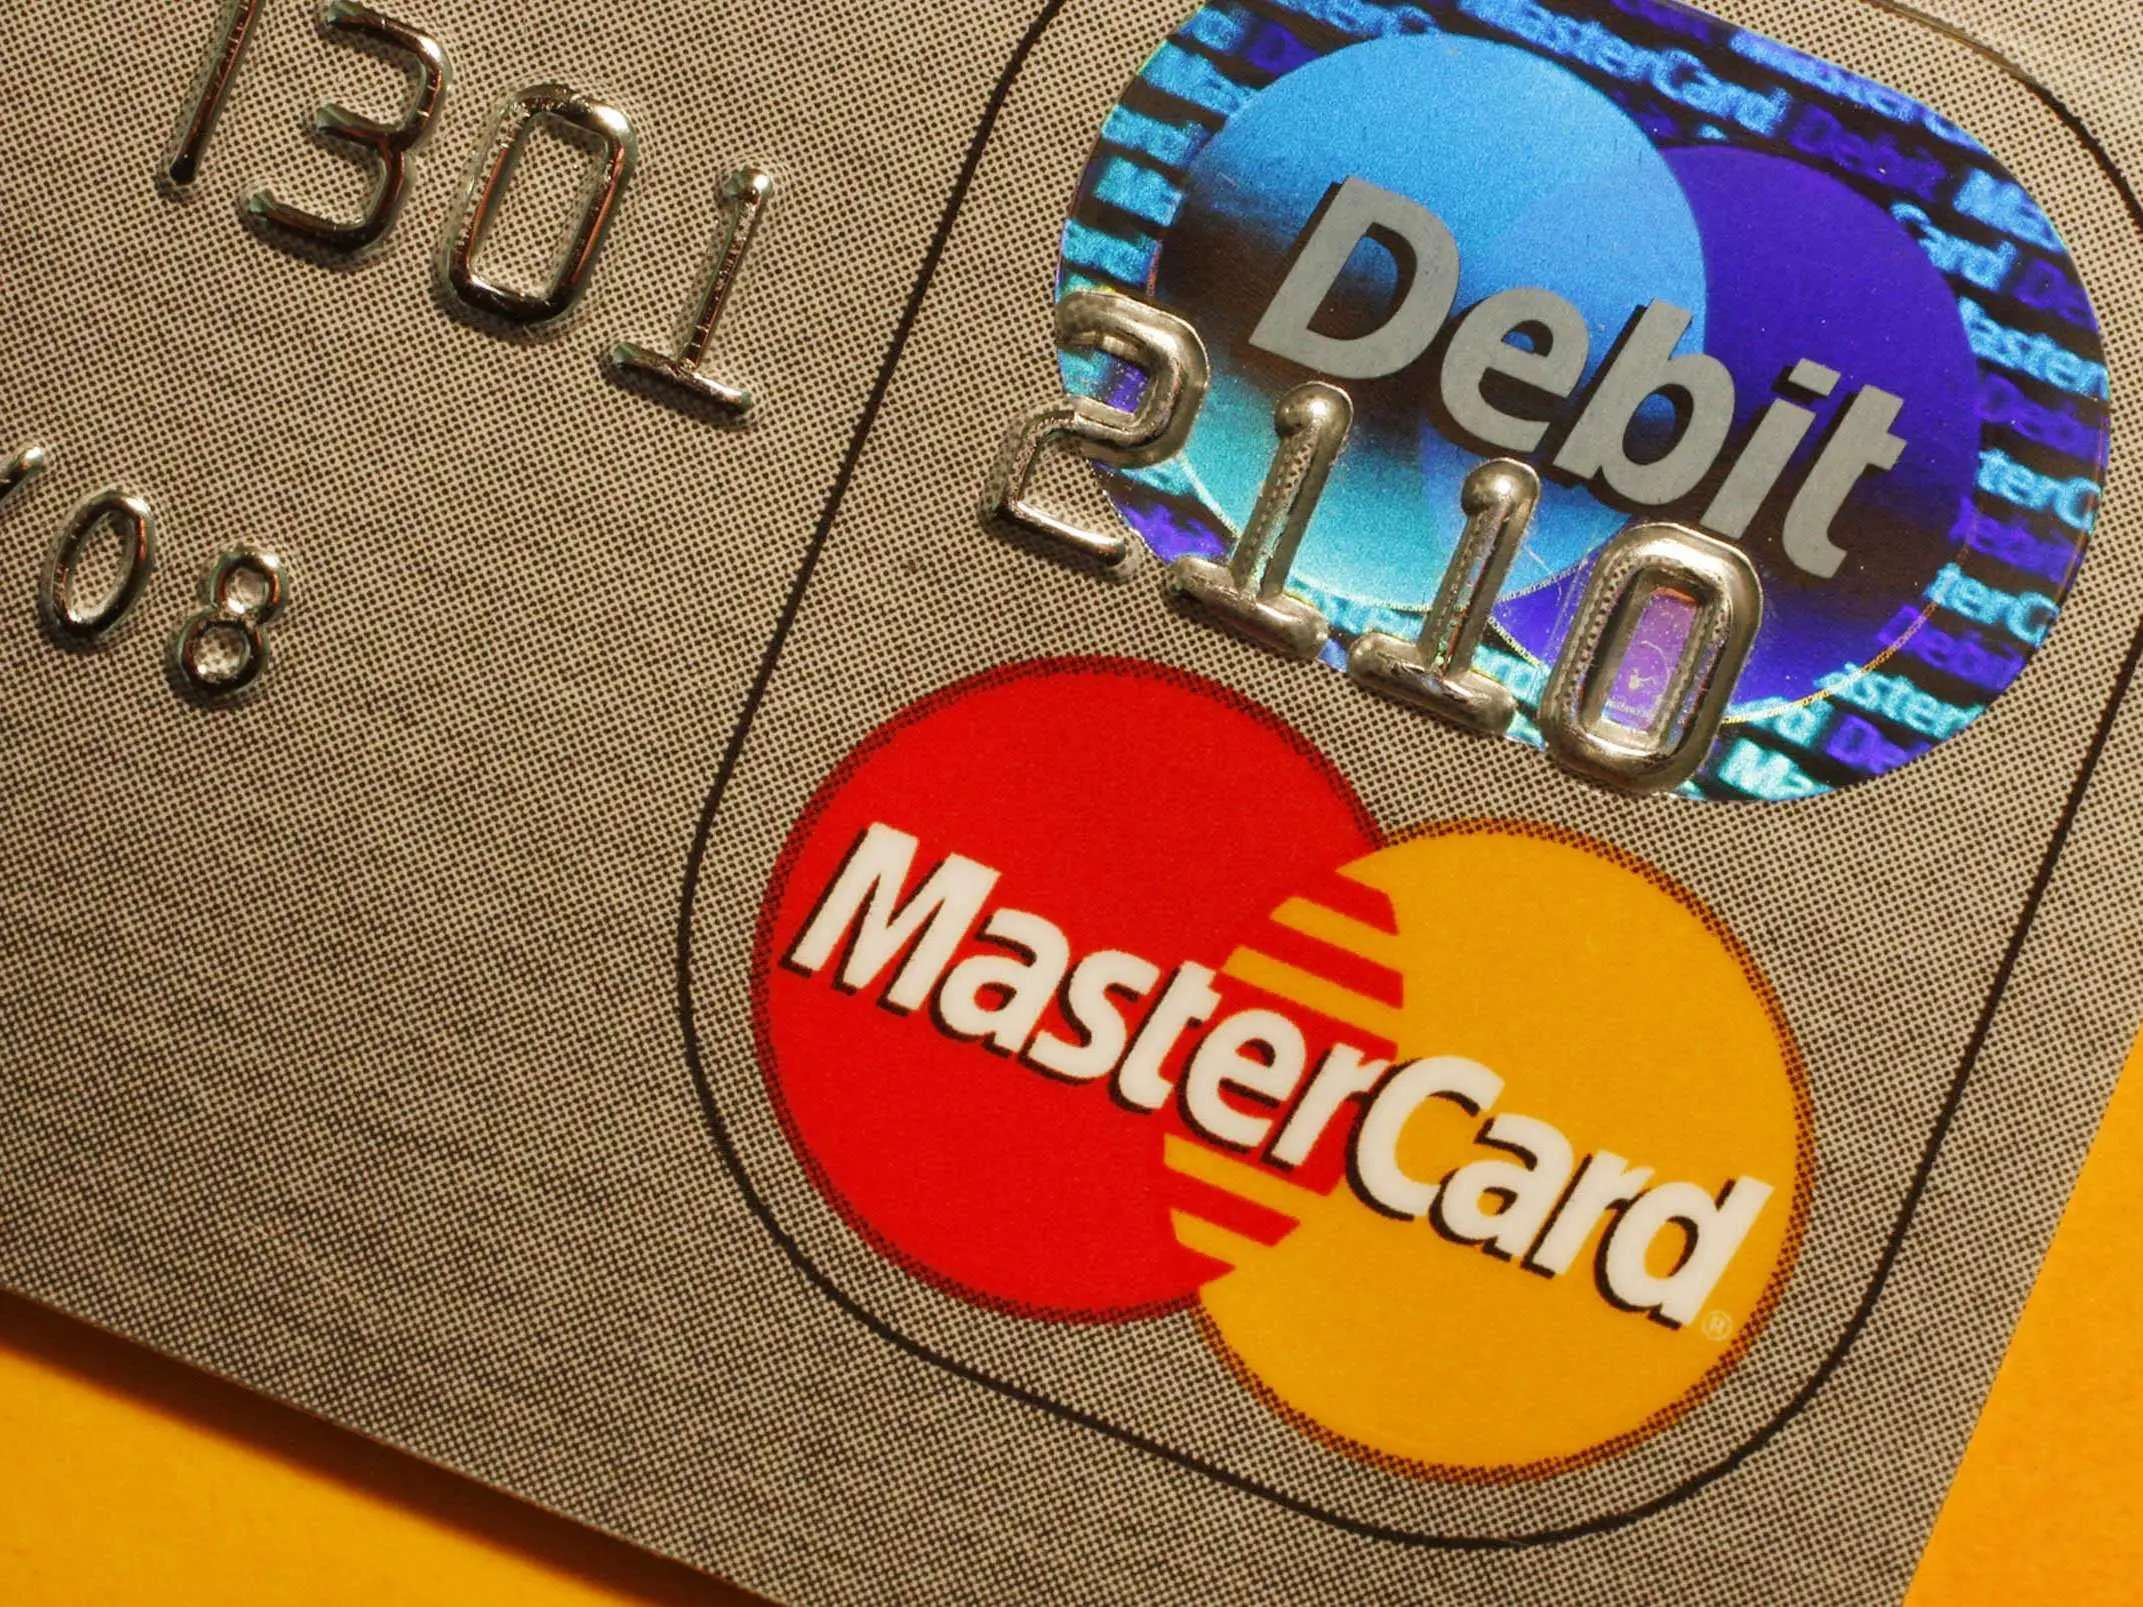 26. Mastercard is held by 17 funds